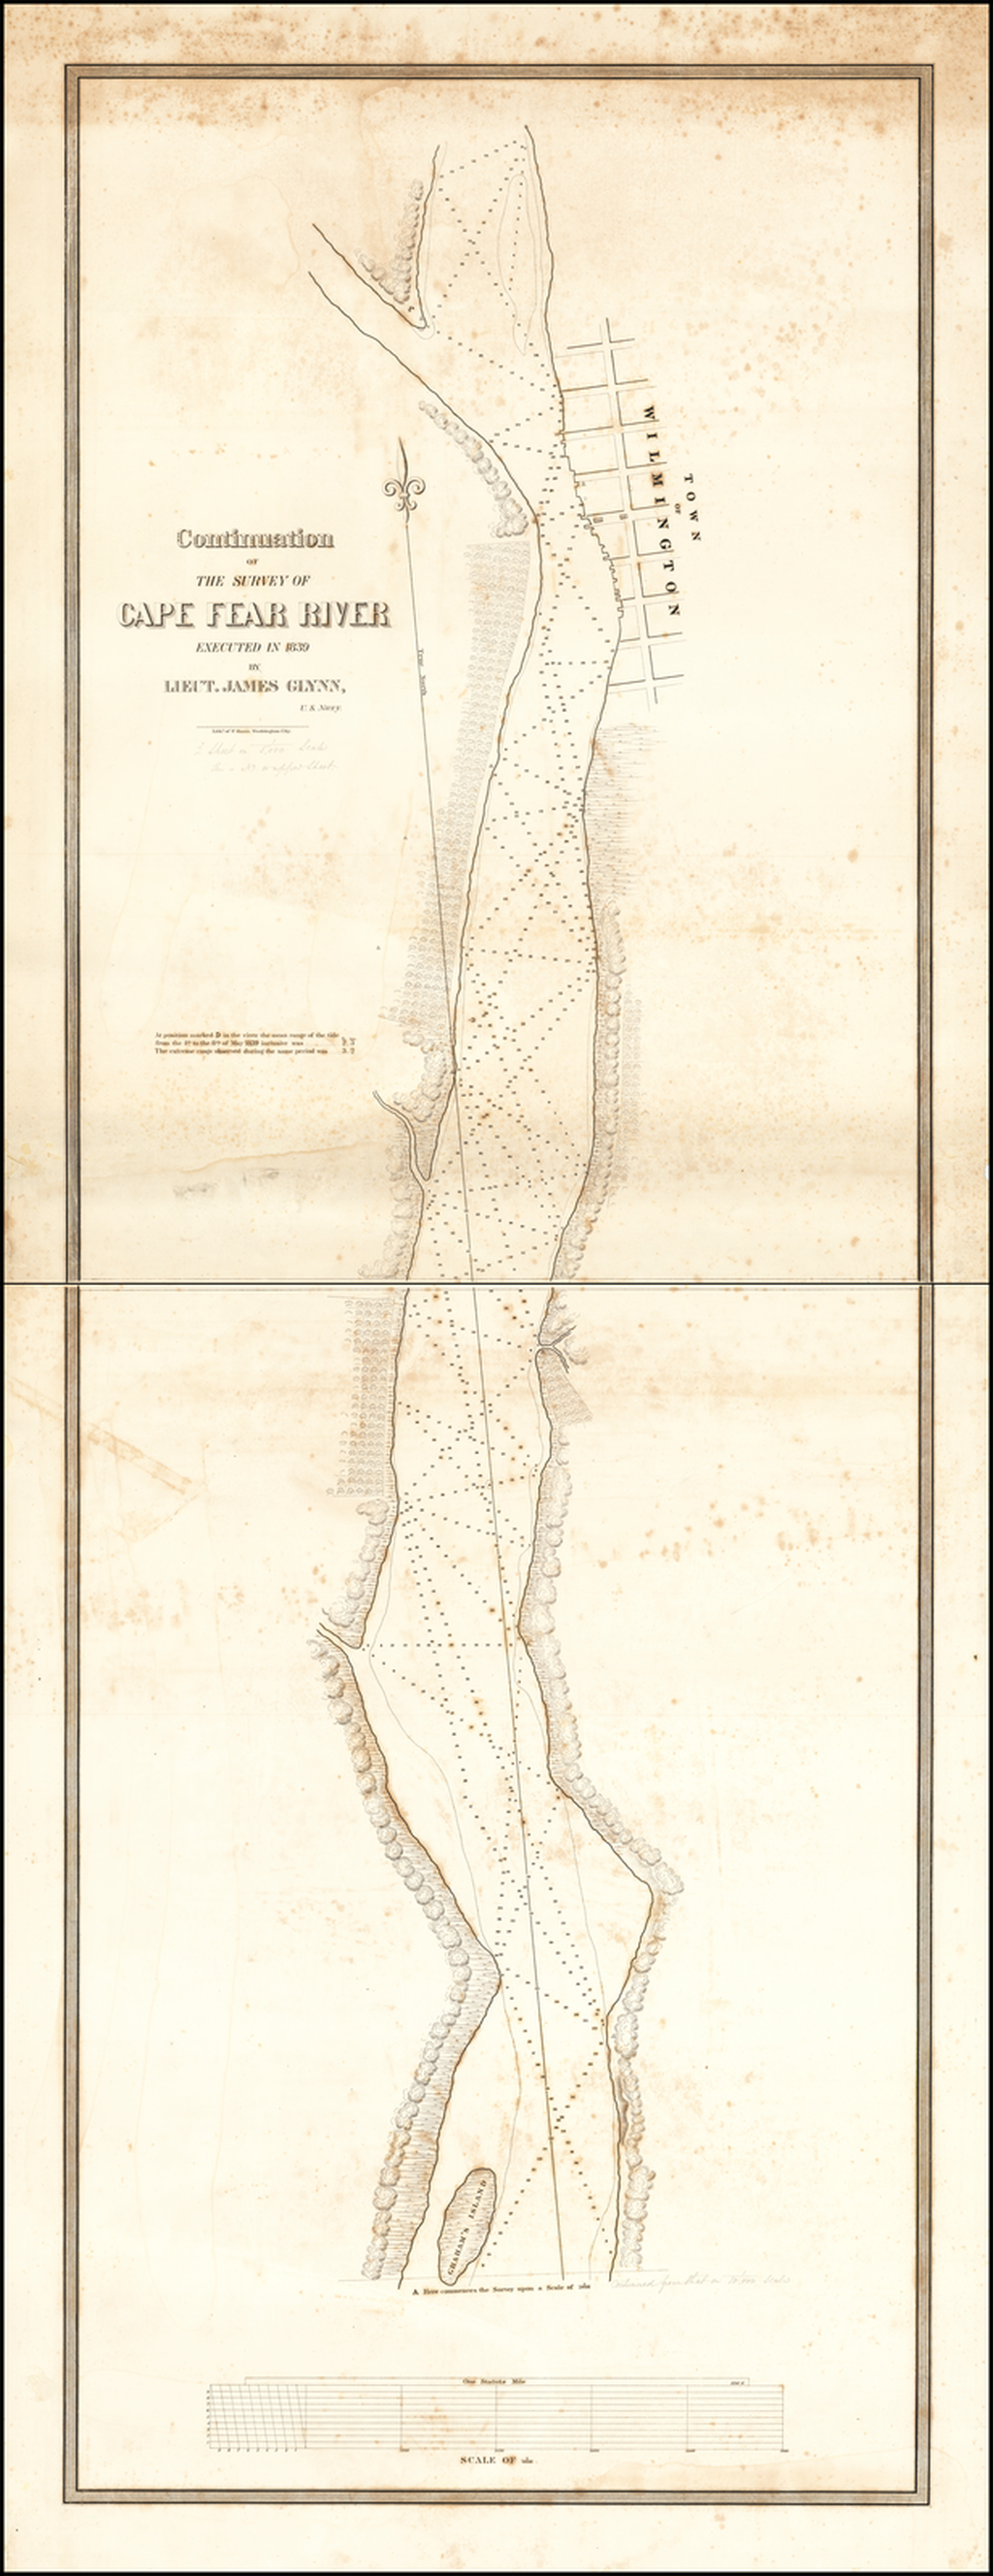 Continuation of The Survey of Cape Fear River Executed in  1839 Lieut. James Glynn,  U.S Navy By James Glynn